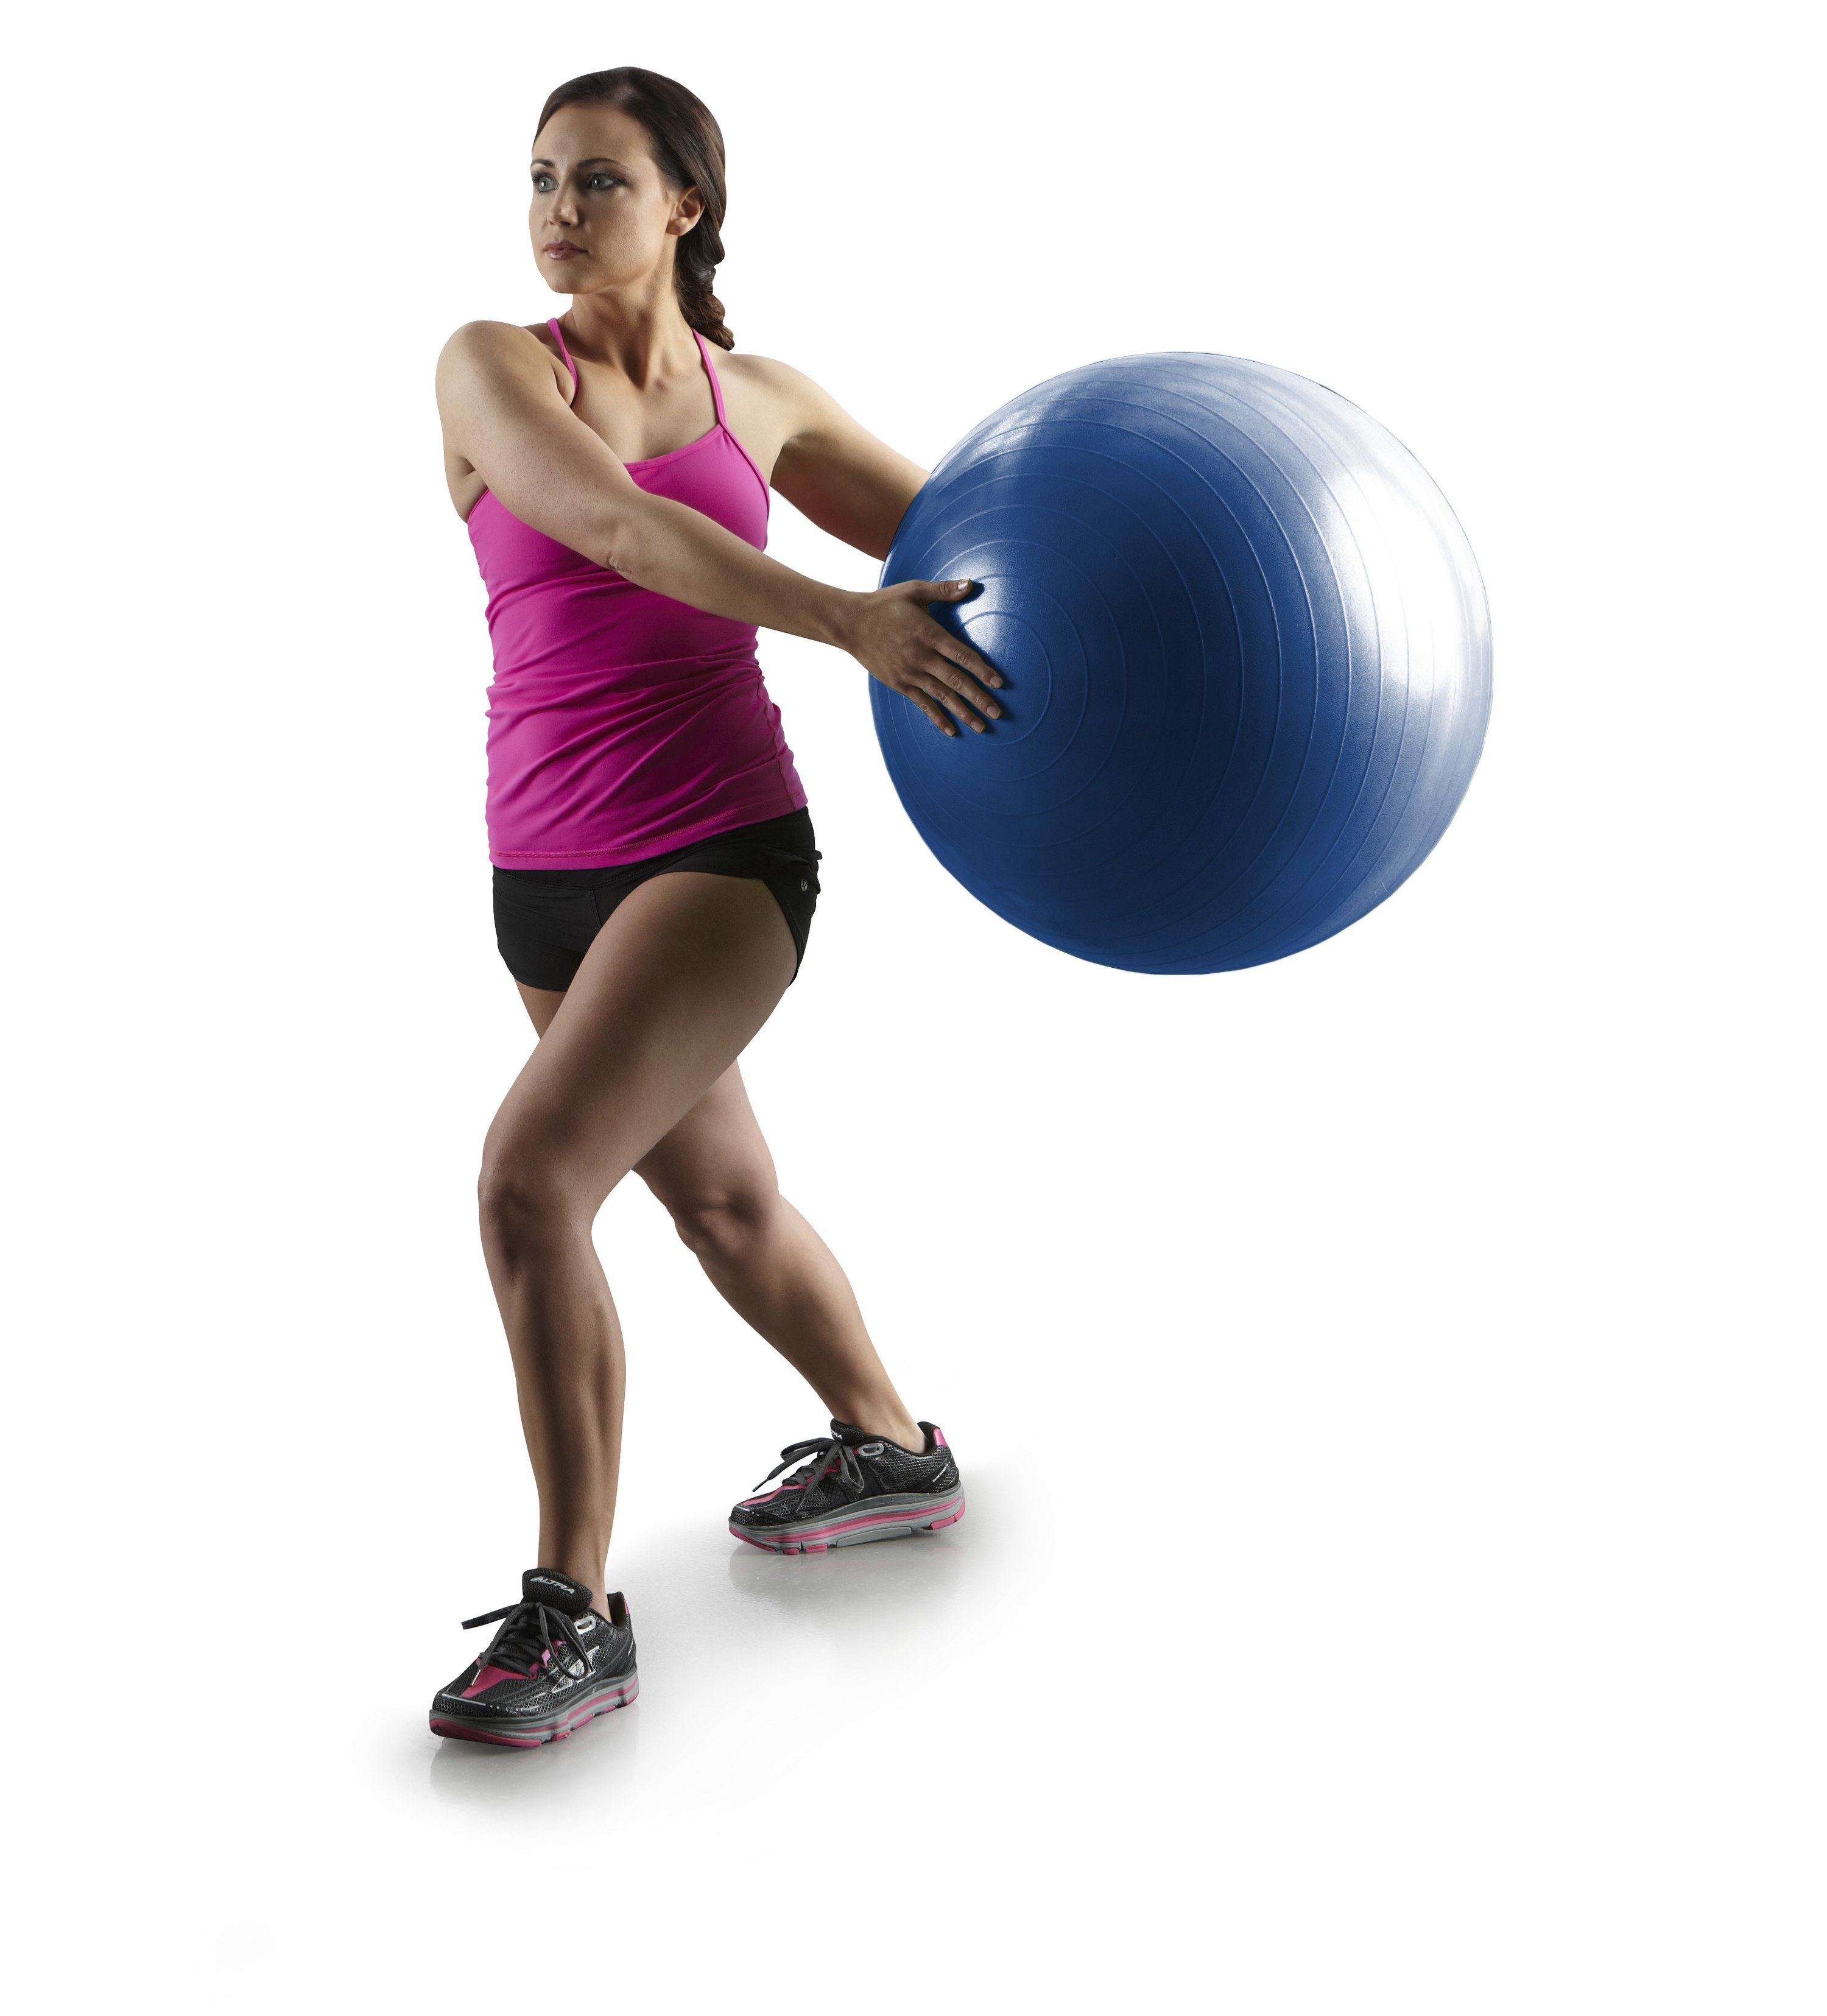 person using a blue exercise ball